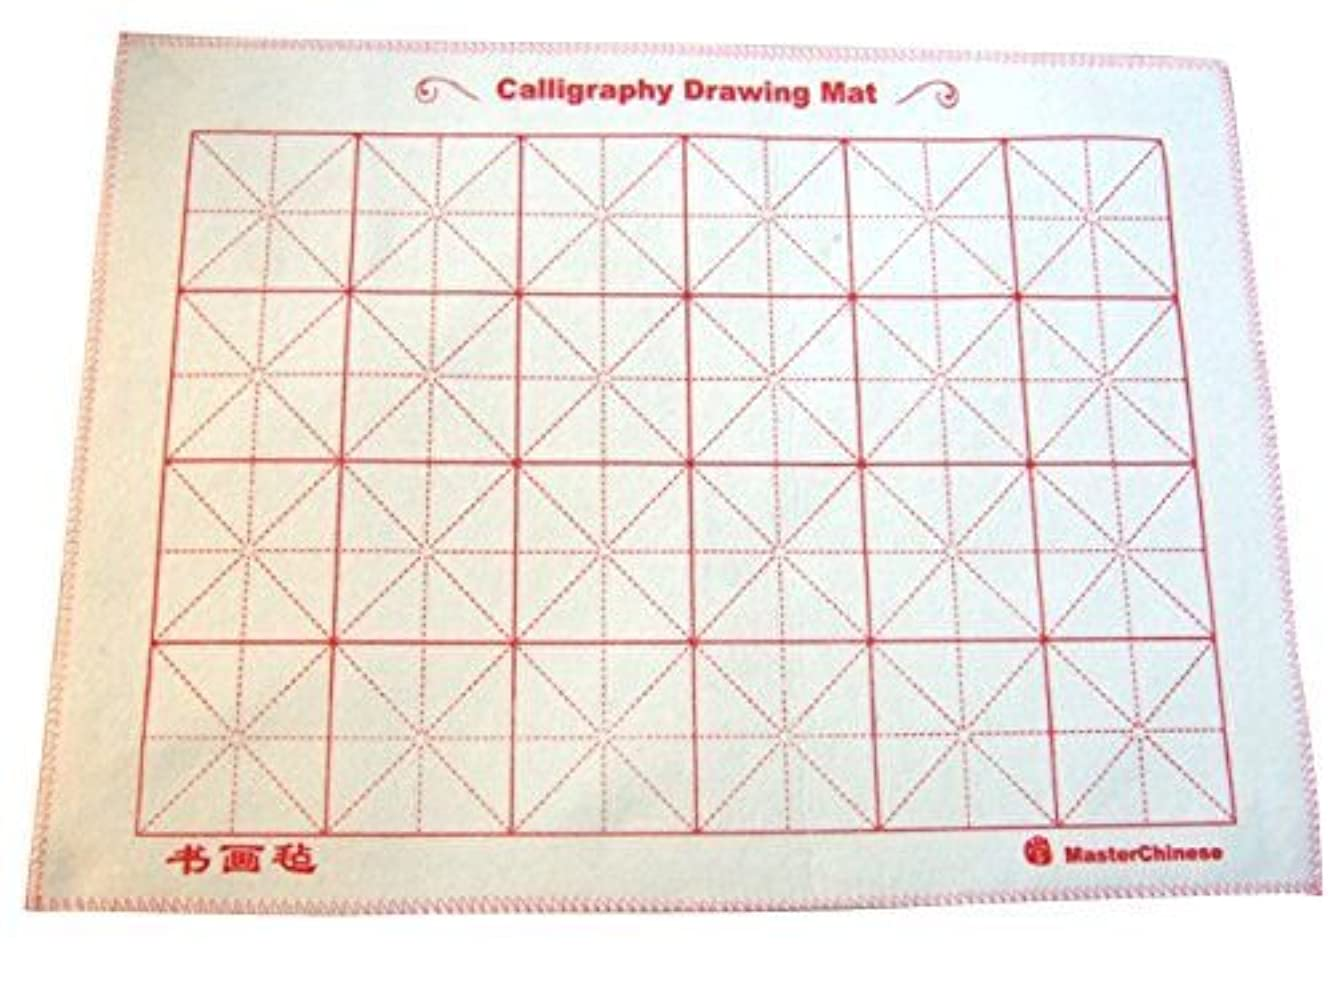 MasterChinese Students Calligraphy Mat 20x27 inches (50x70 cm) - Thick with Grids